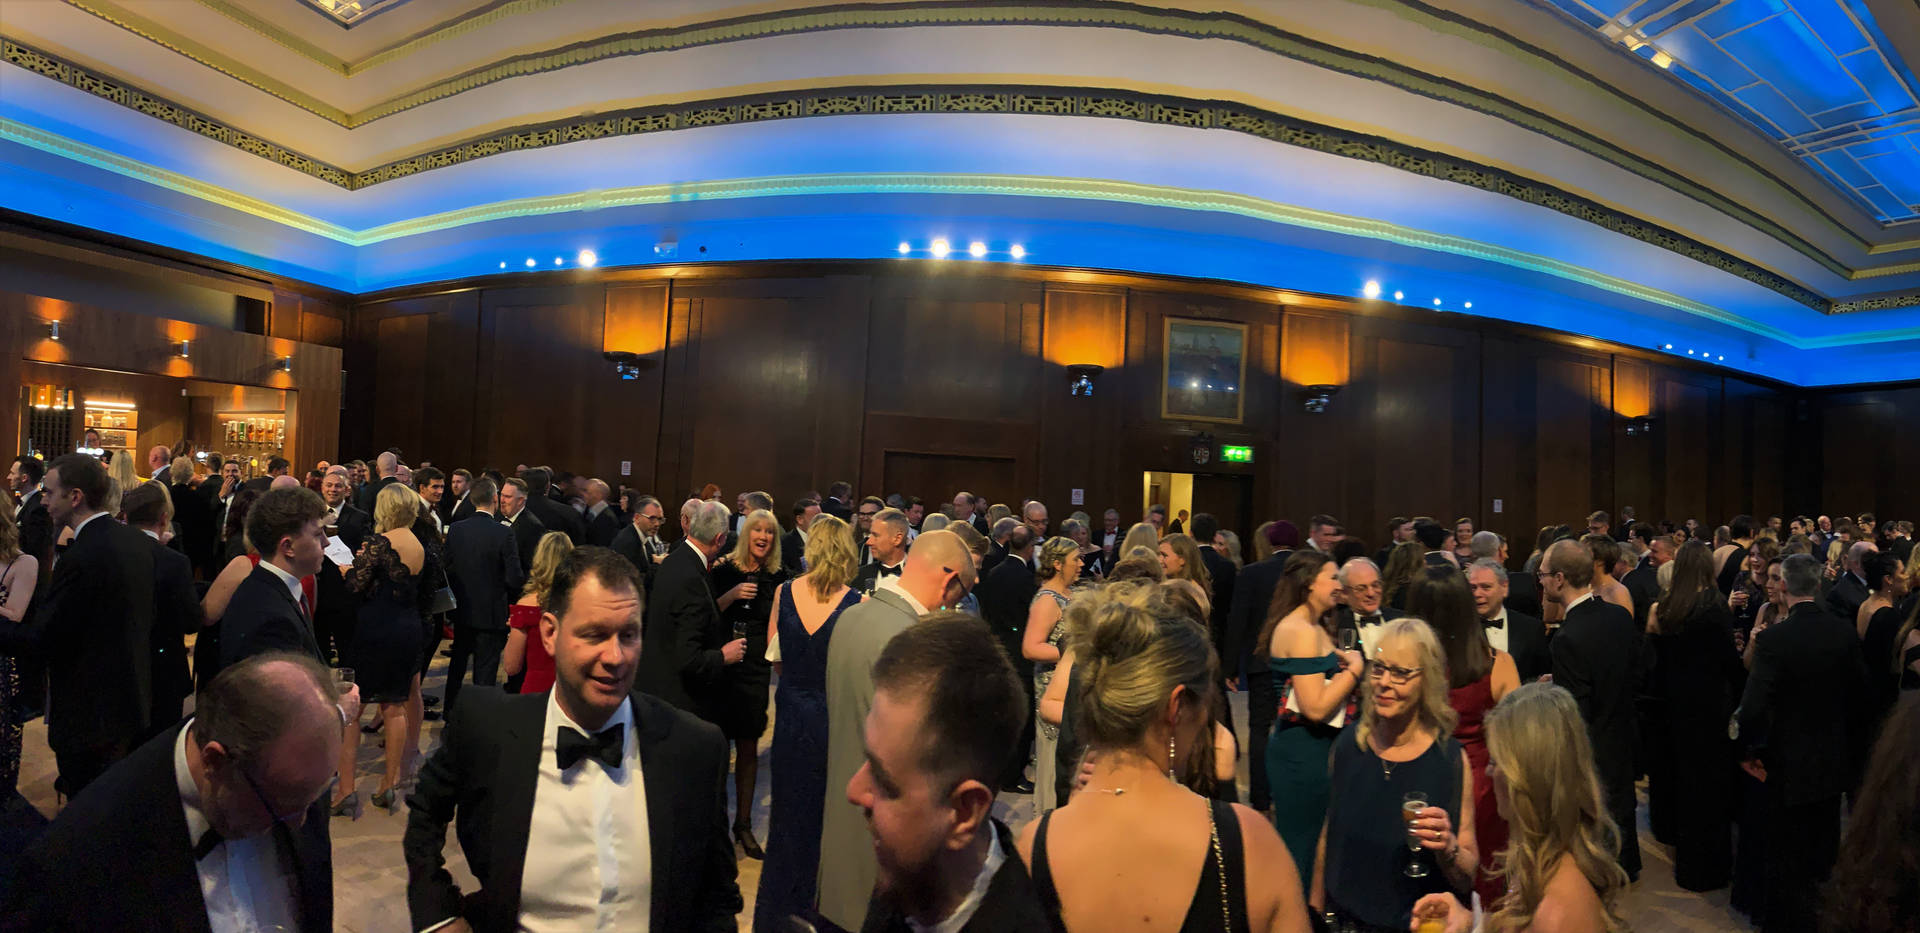 Panoramic View of Champagne Reception at King's Hall, Stoke